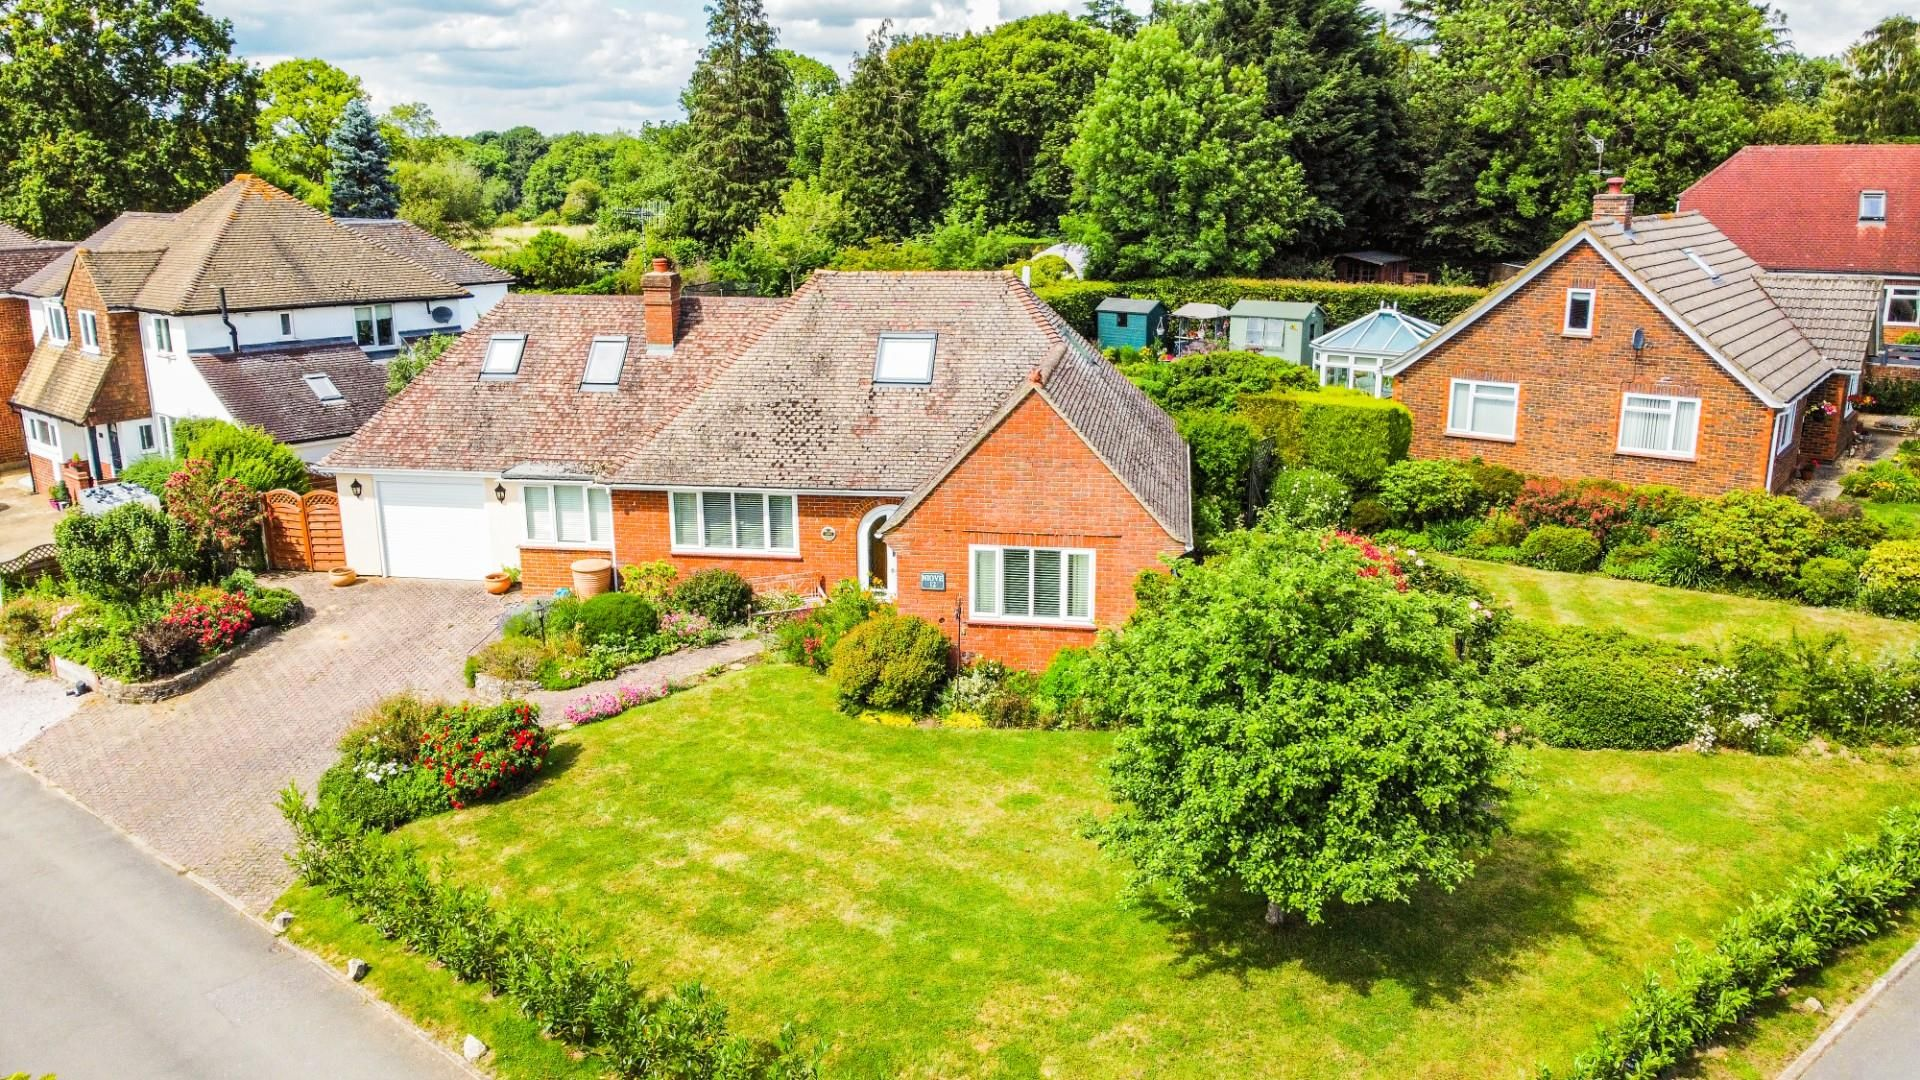 4 bed detached bungalow for sale in Send  - Property Image 1